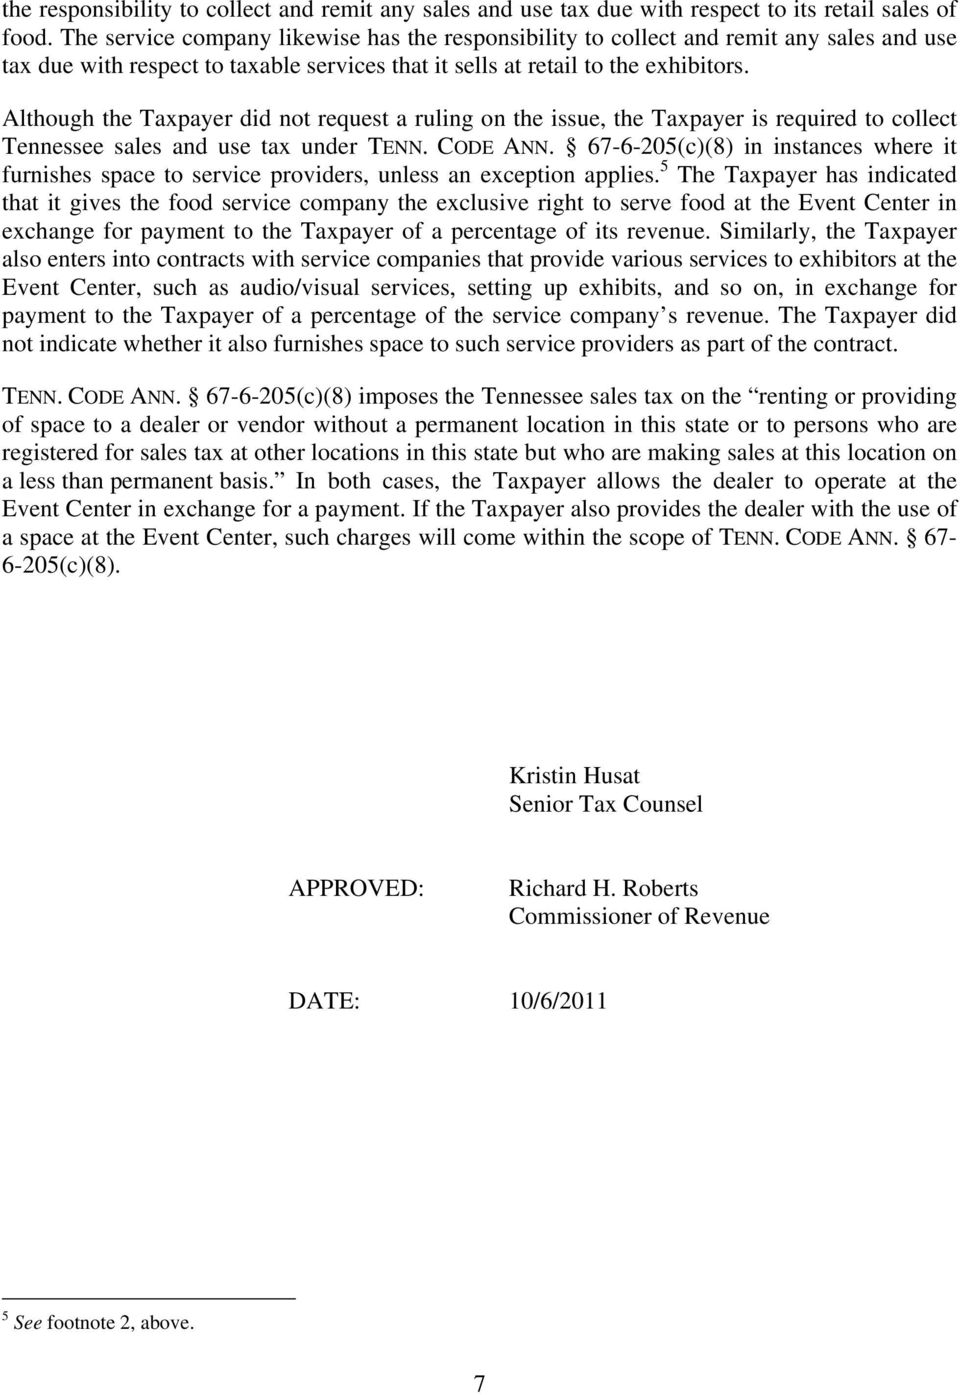 Although the Taxpayer did not request a ruling on the issue, the Taxpayer is required to collect Tennessee sales and use tax under TENN. CODE ANN.